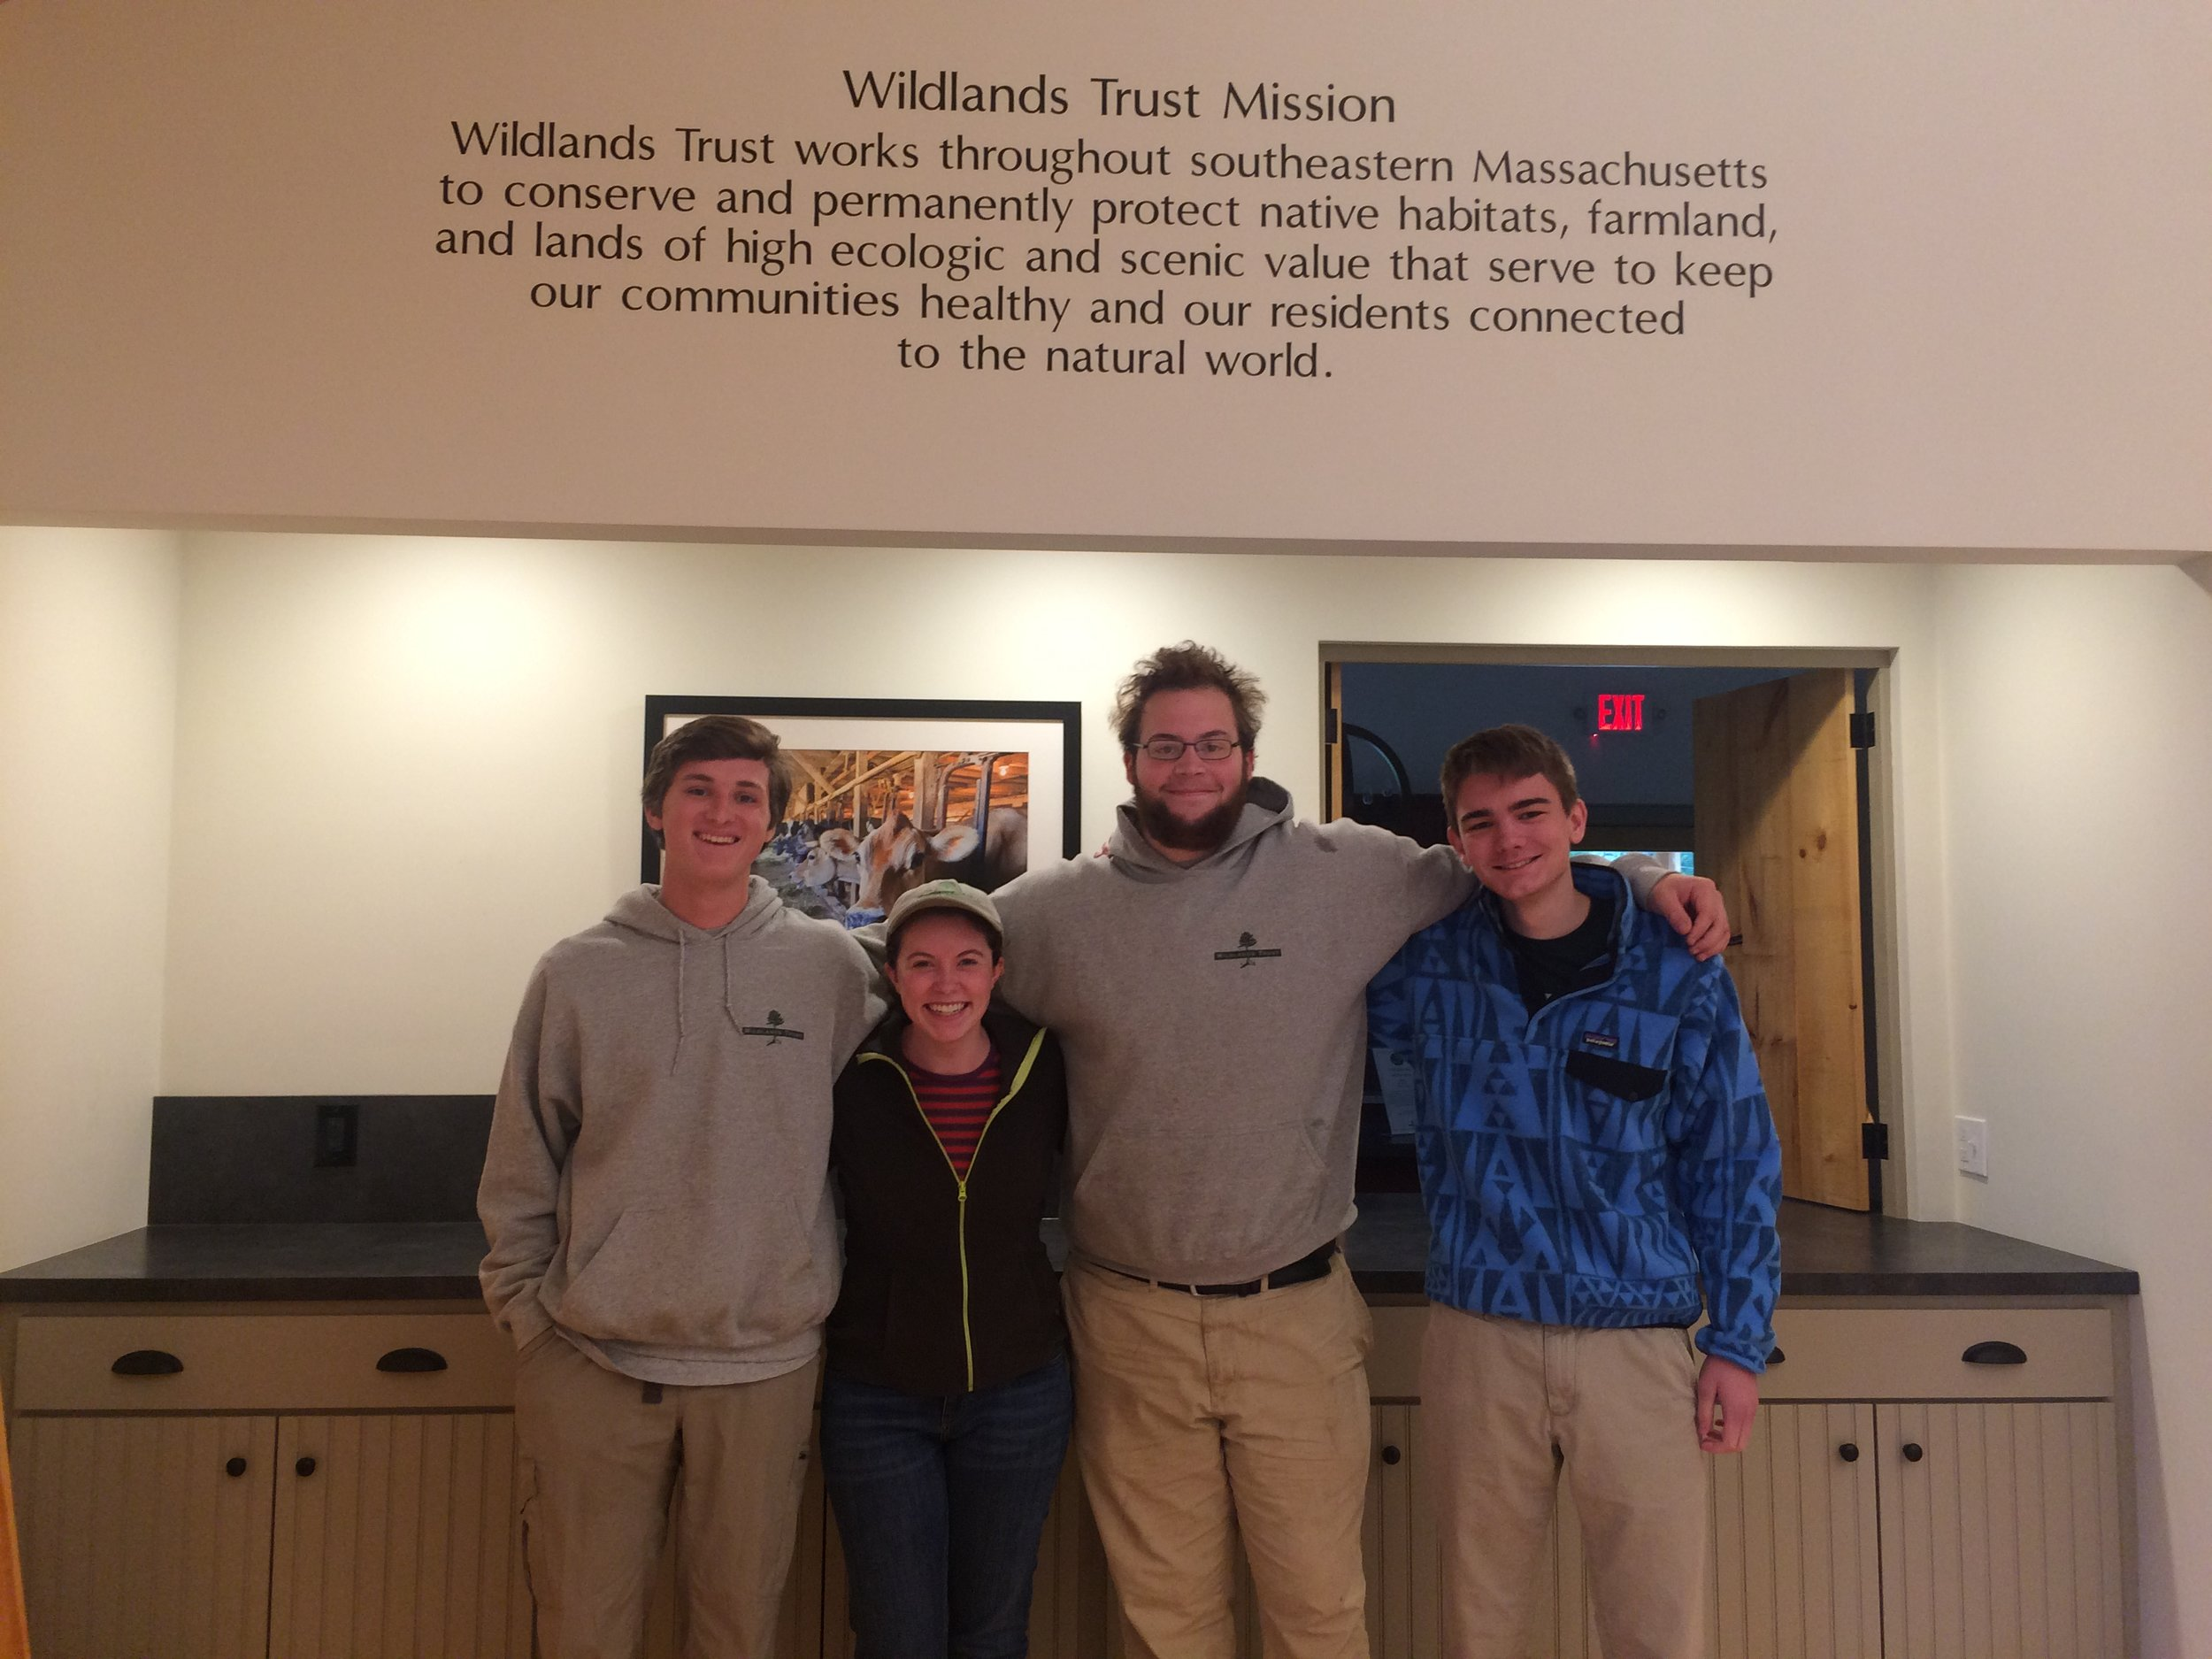 From the Left: Hugh Grey, Maura Coughlin, Ryan Duty, and Hunter Wiese